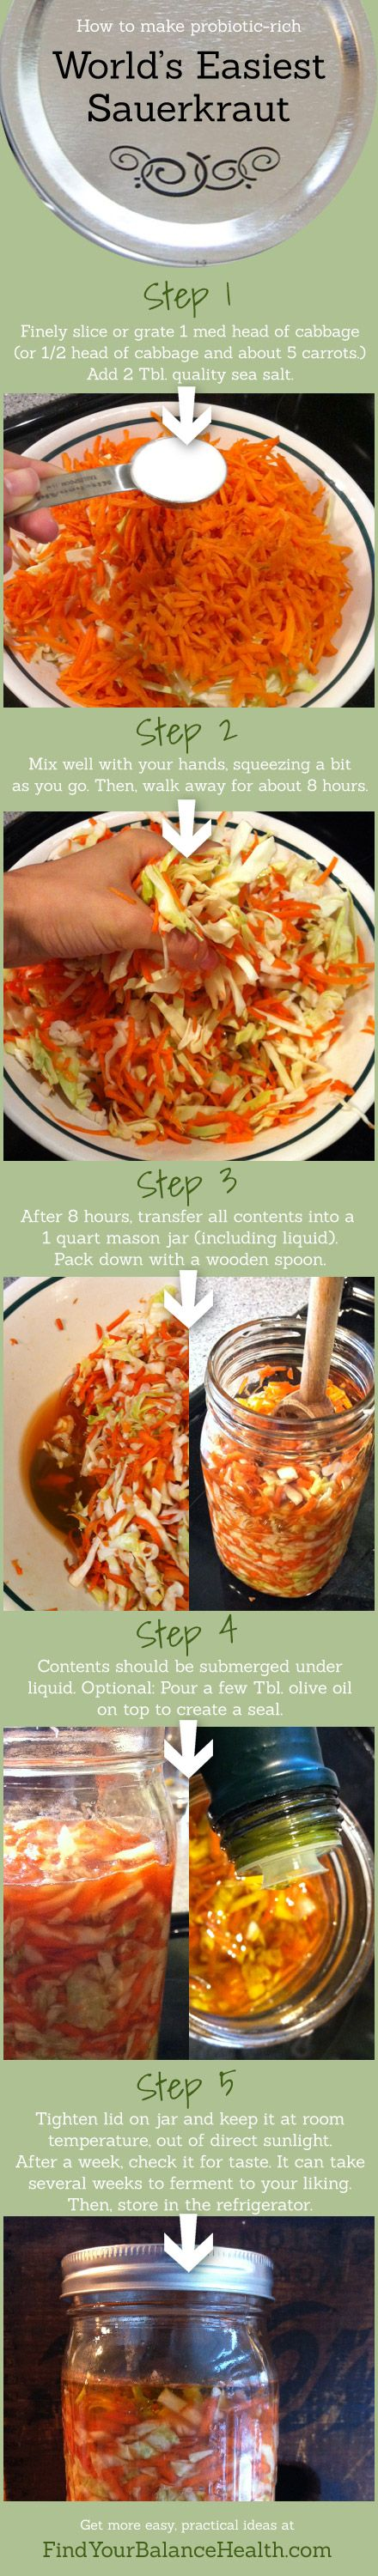 World's Easiest Sauerkraut Recipe. You can SO do this.   Find Your Balance with Michelle Pfennighaus